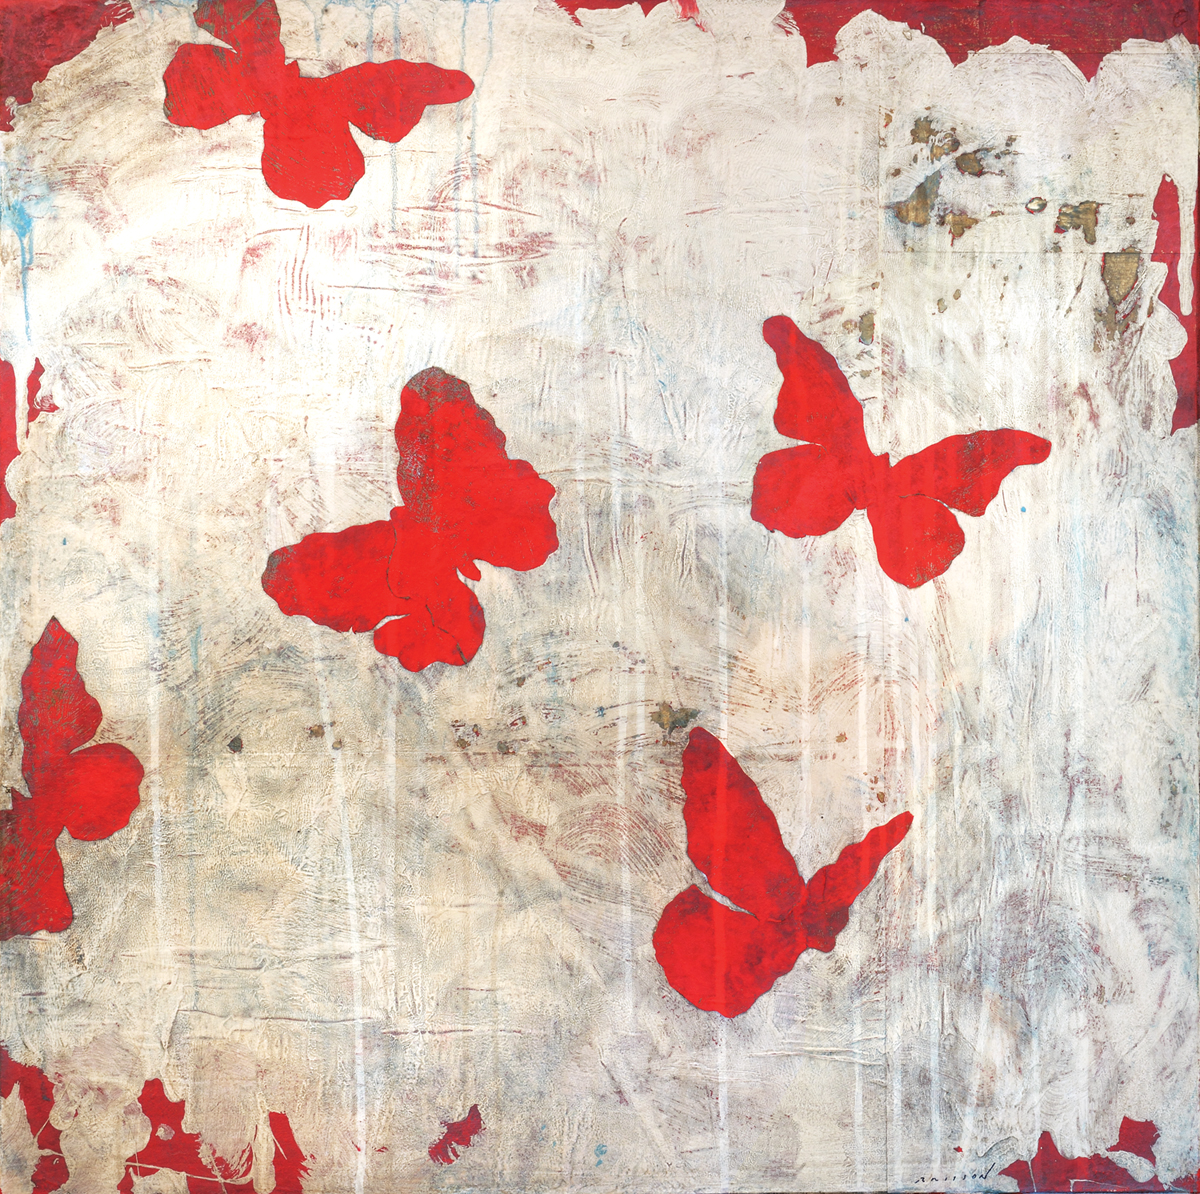 Papillons rouges printemps, Mixed media on canvas, 32 x 32inches, 2017